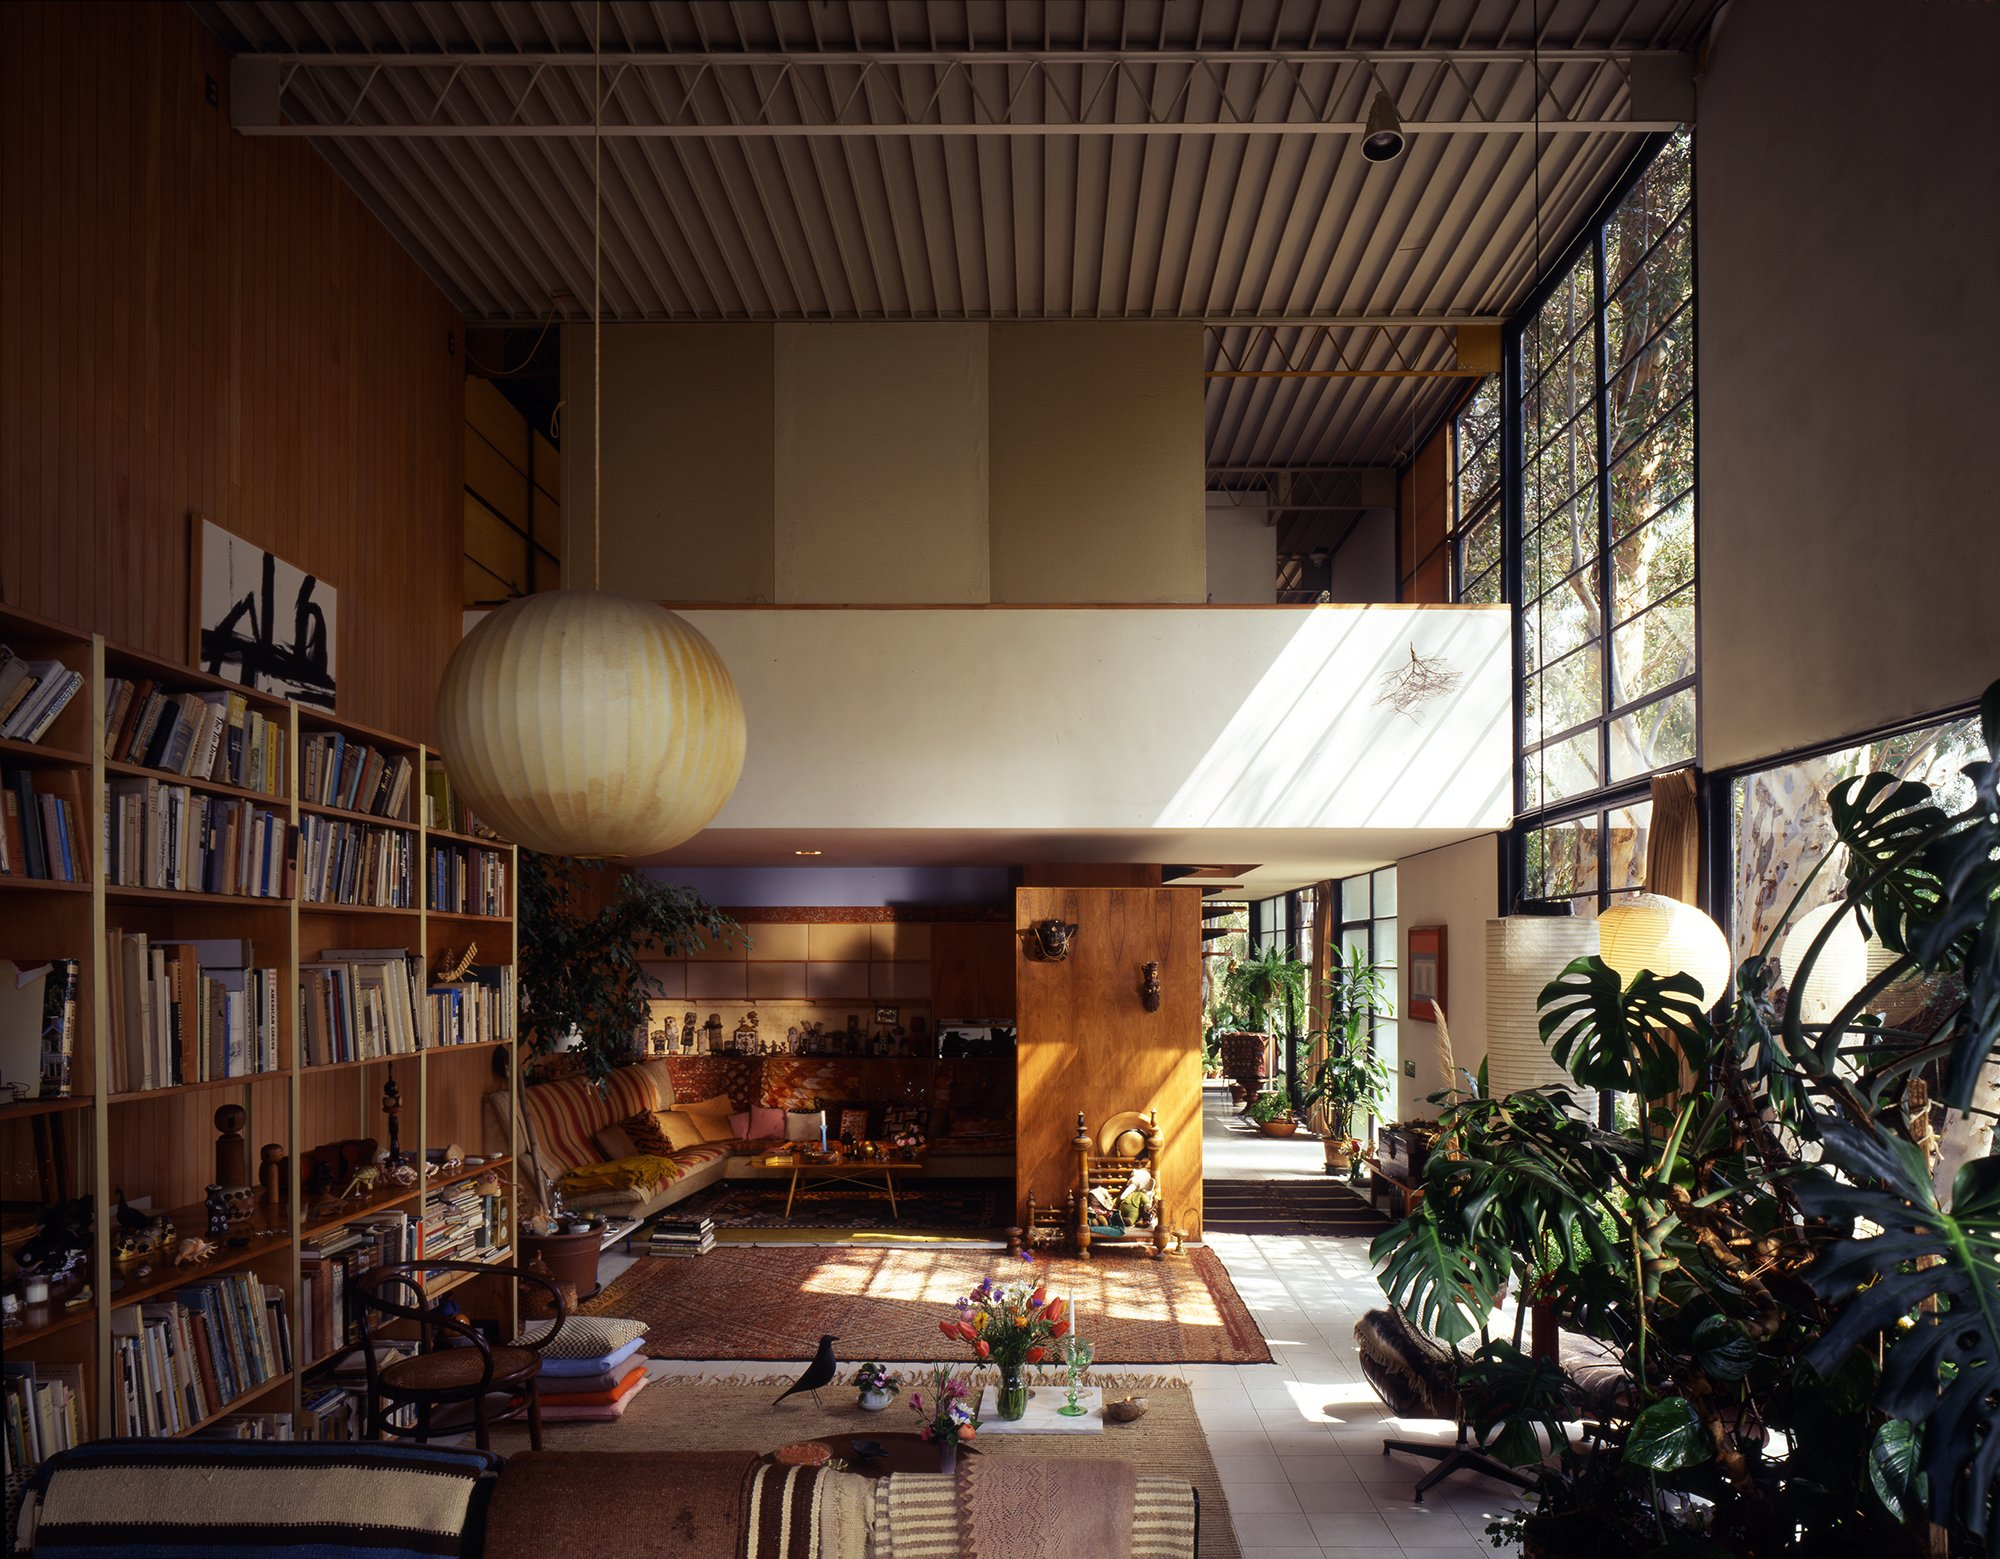 Eames house wttw chicago public media television and for The living room channel 10 tonight